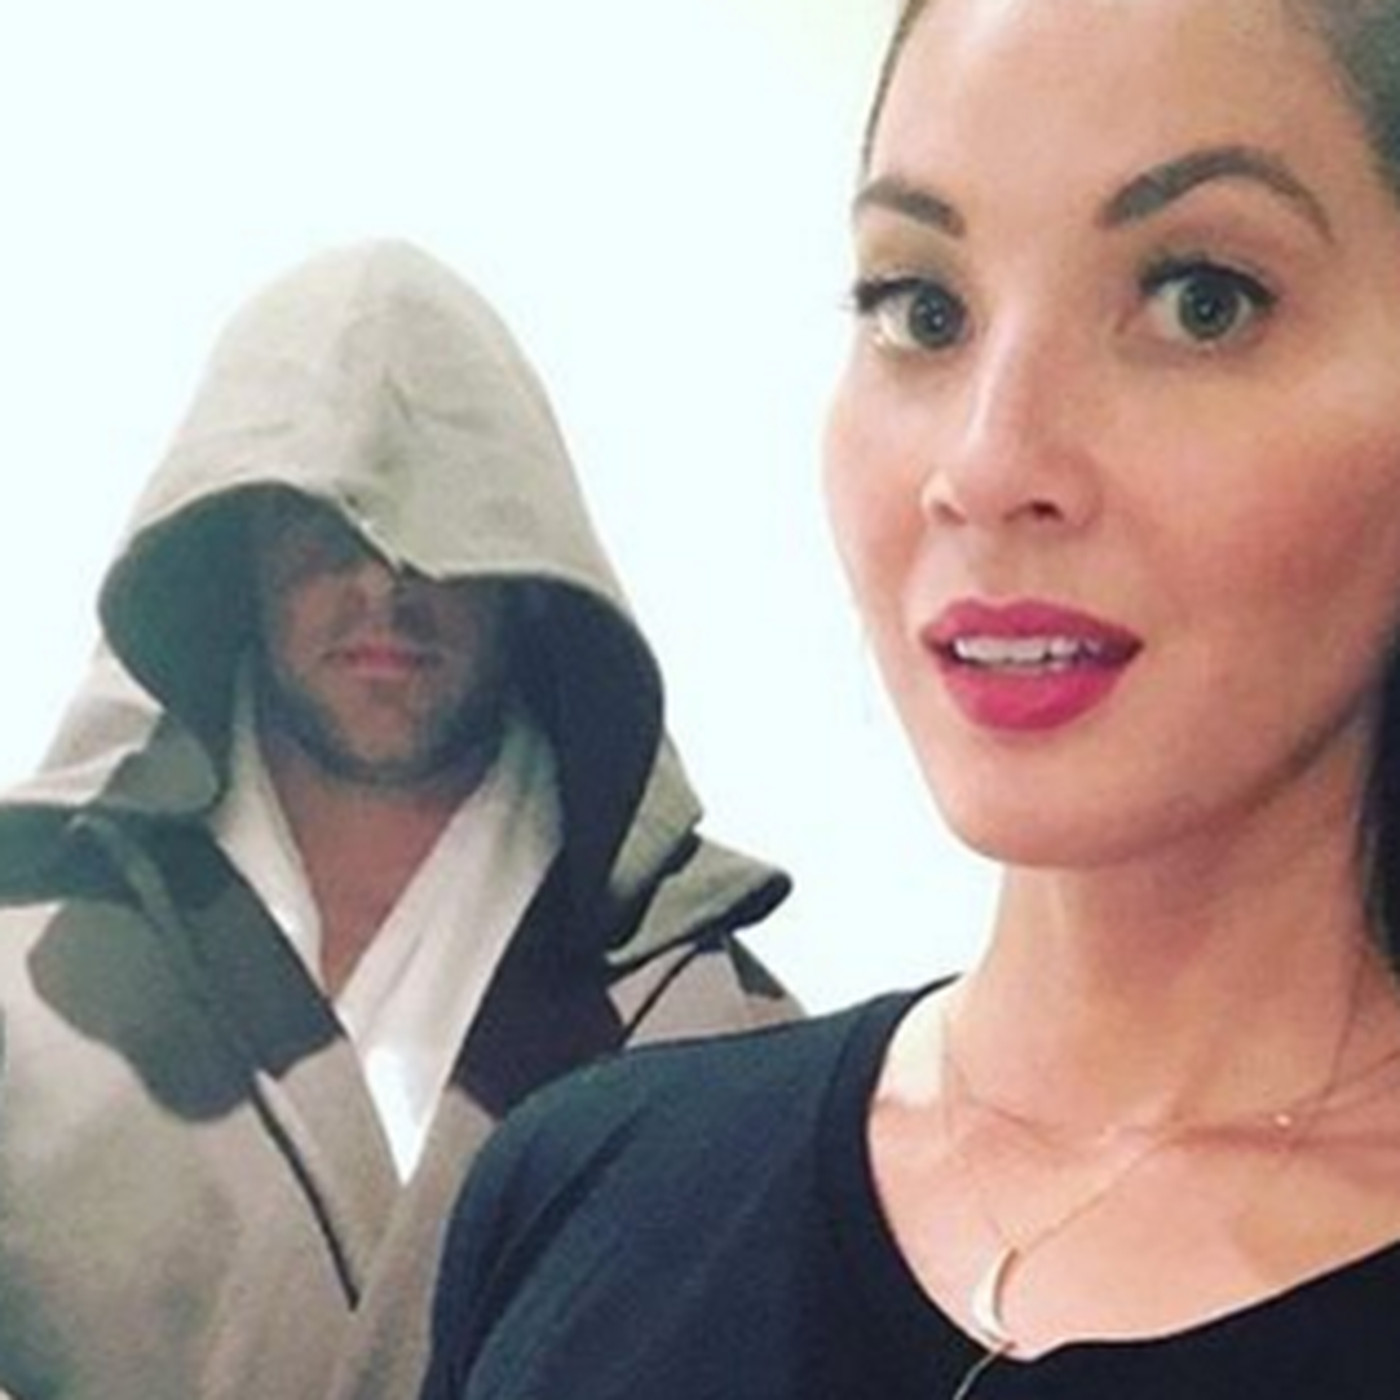 Aaron Rodgers Owns His Own Obi Wan Costume And Dresses Up For Olivia Munn Sbnation Com